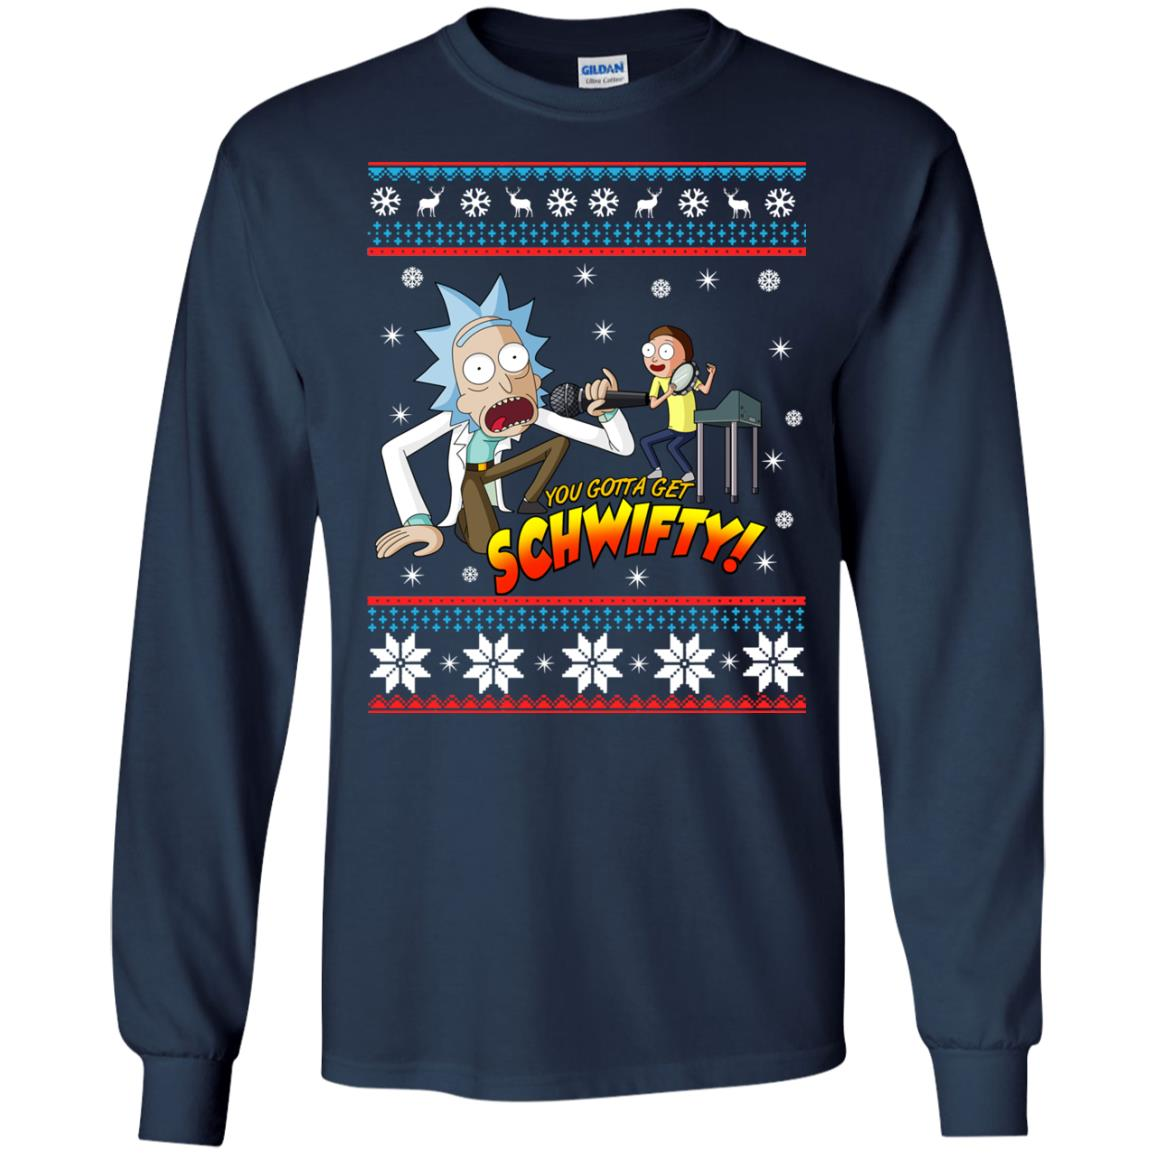 image 2412 - You gotta get Schwifty Ugly Christmas sweater, hoodie